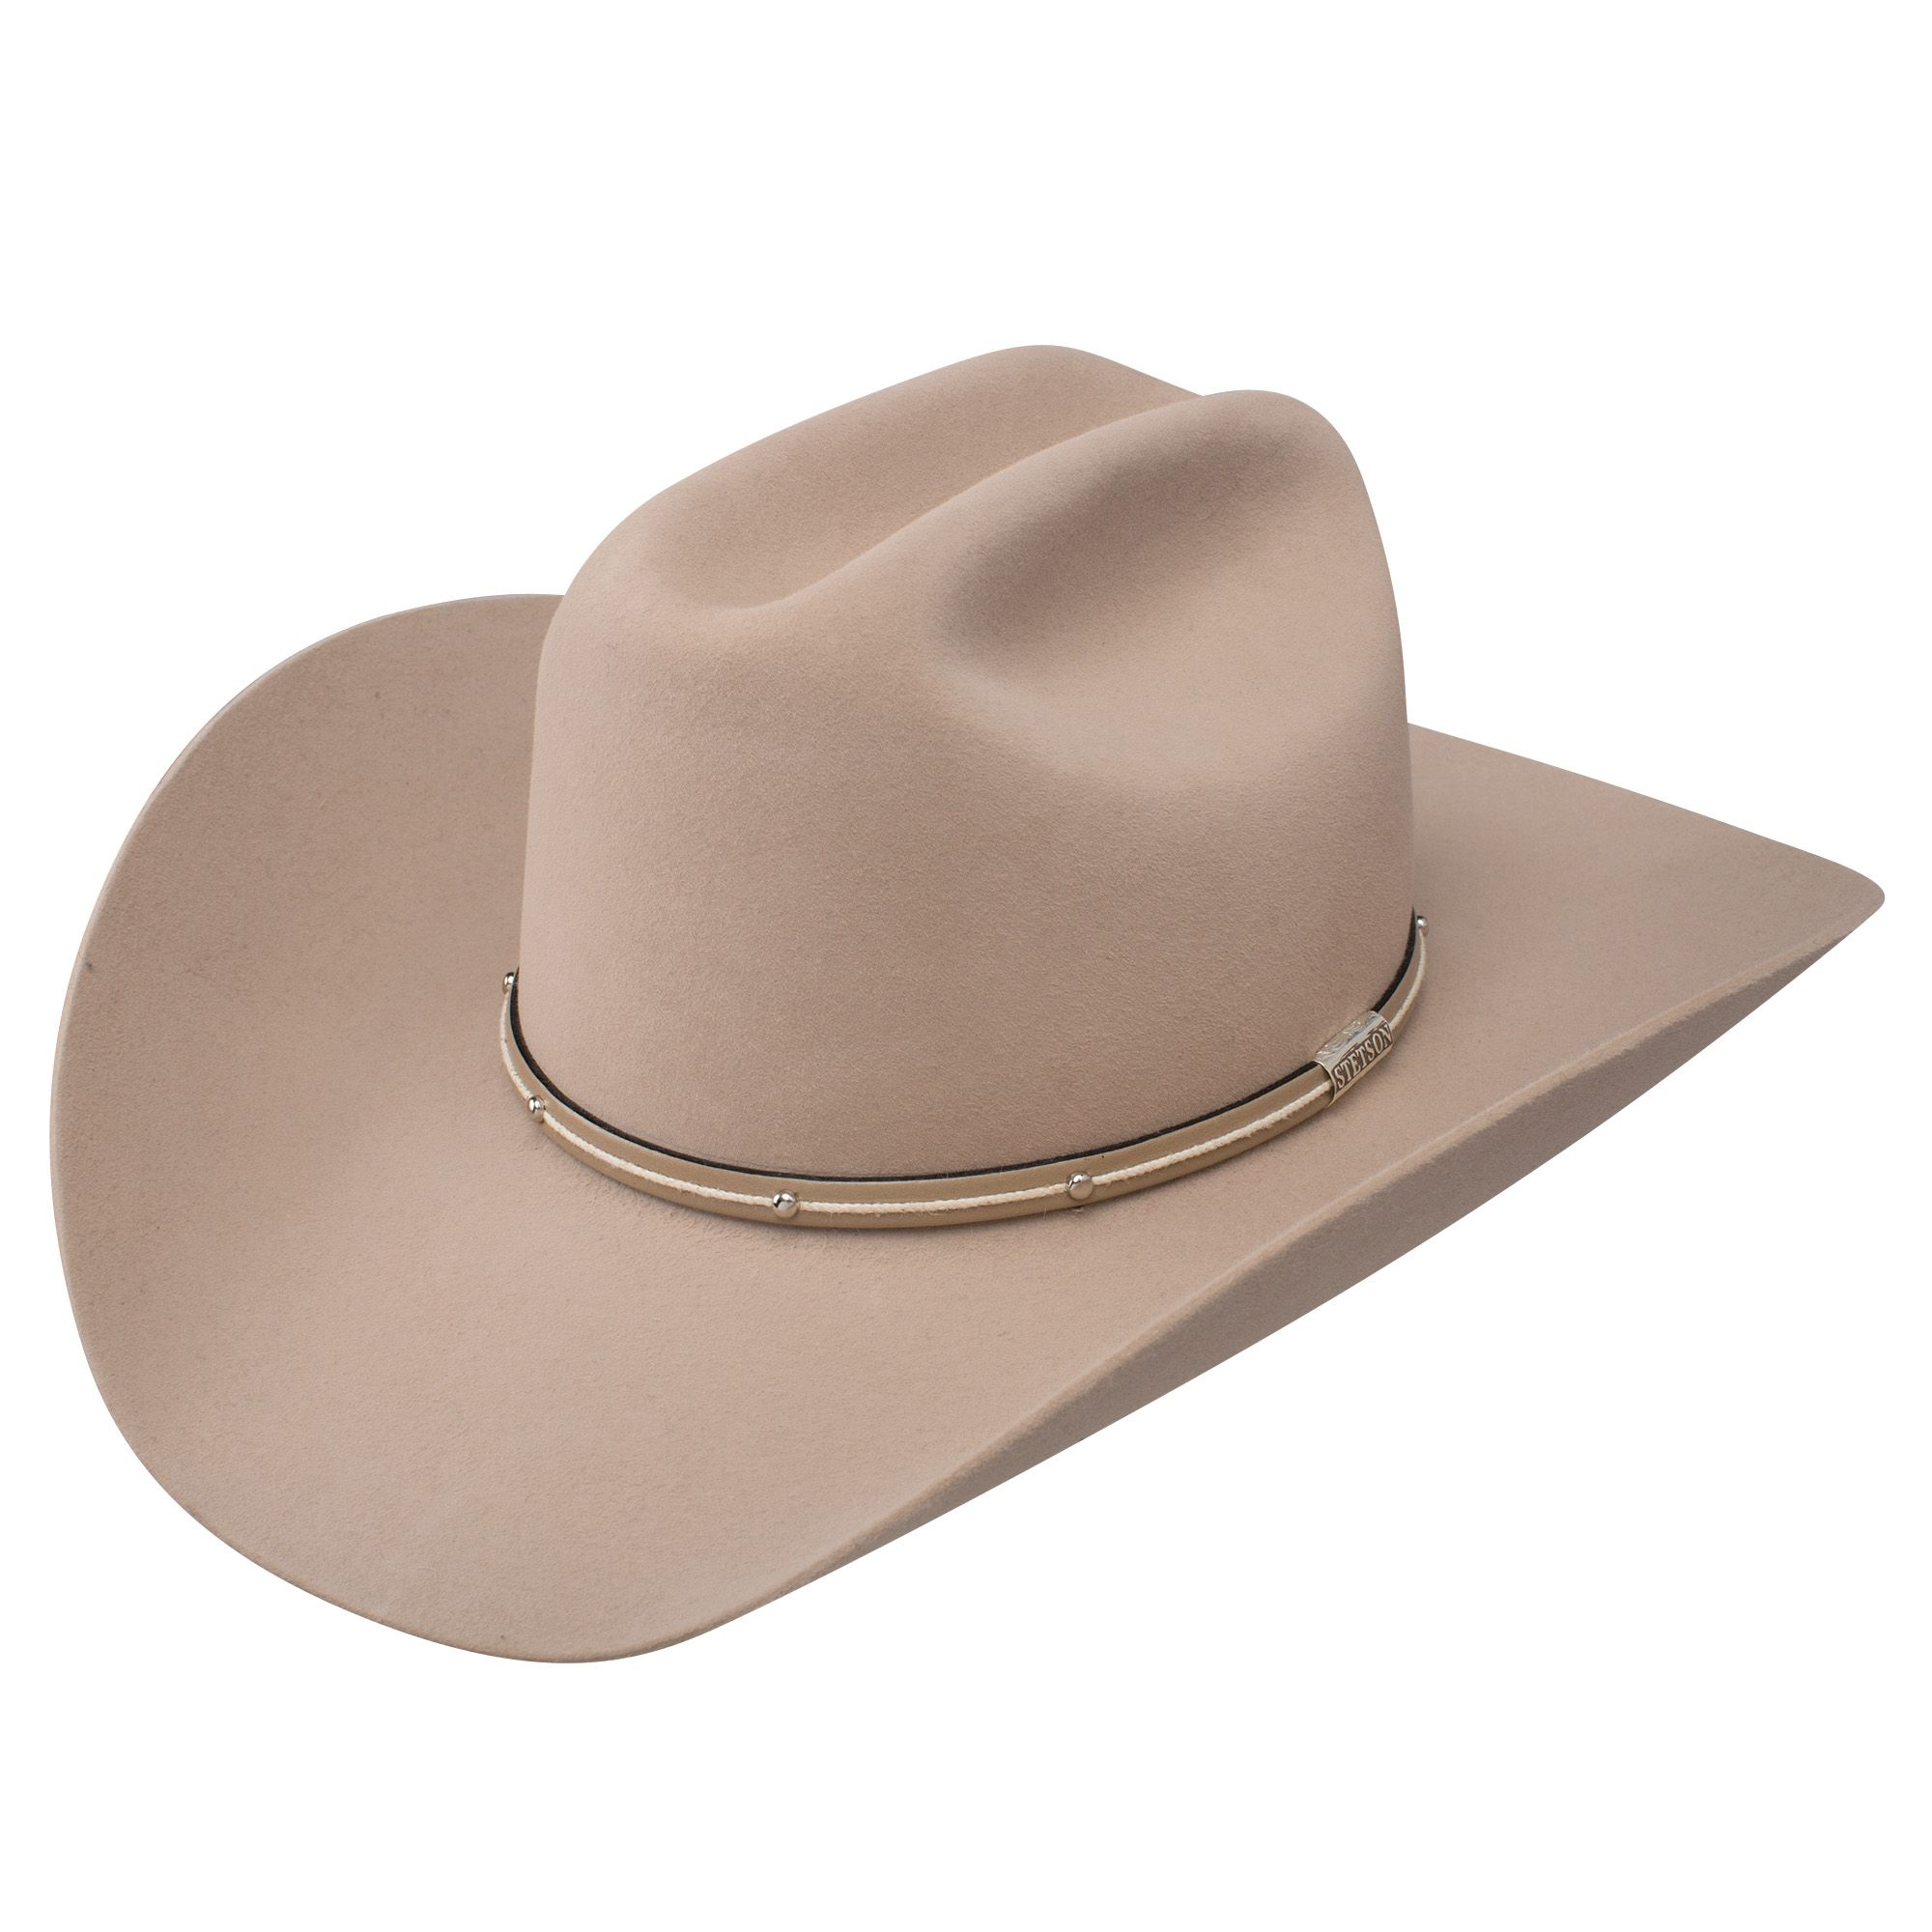 Renegade Cowboy Western Hat By Bailey Western Ferring Pecan Us Xxl Visit The Image Link More Details Leather Cowboy Hats Cowboy Hats Hats For Men